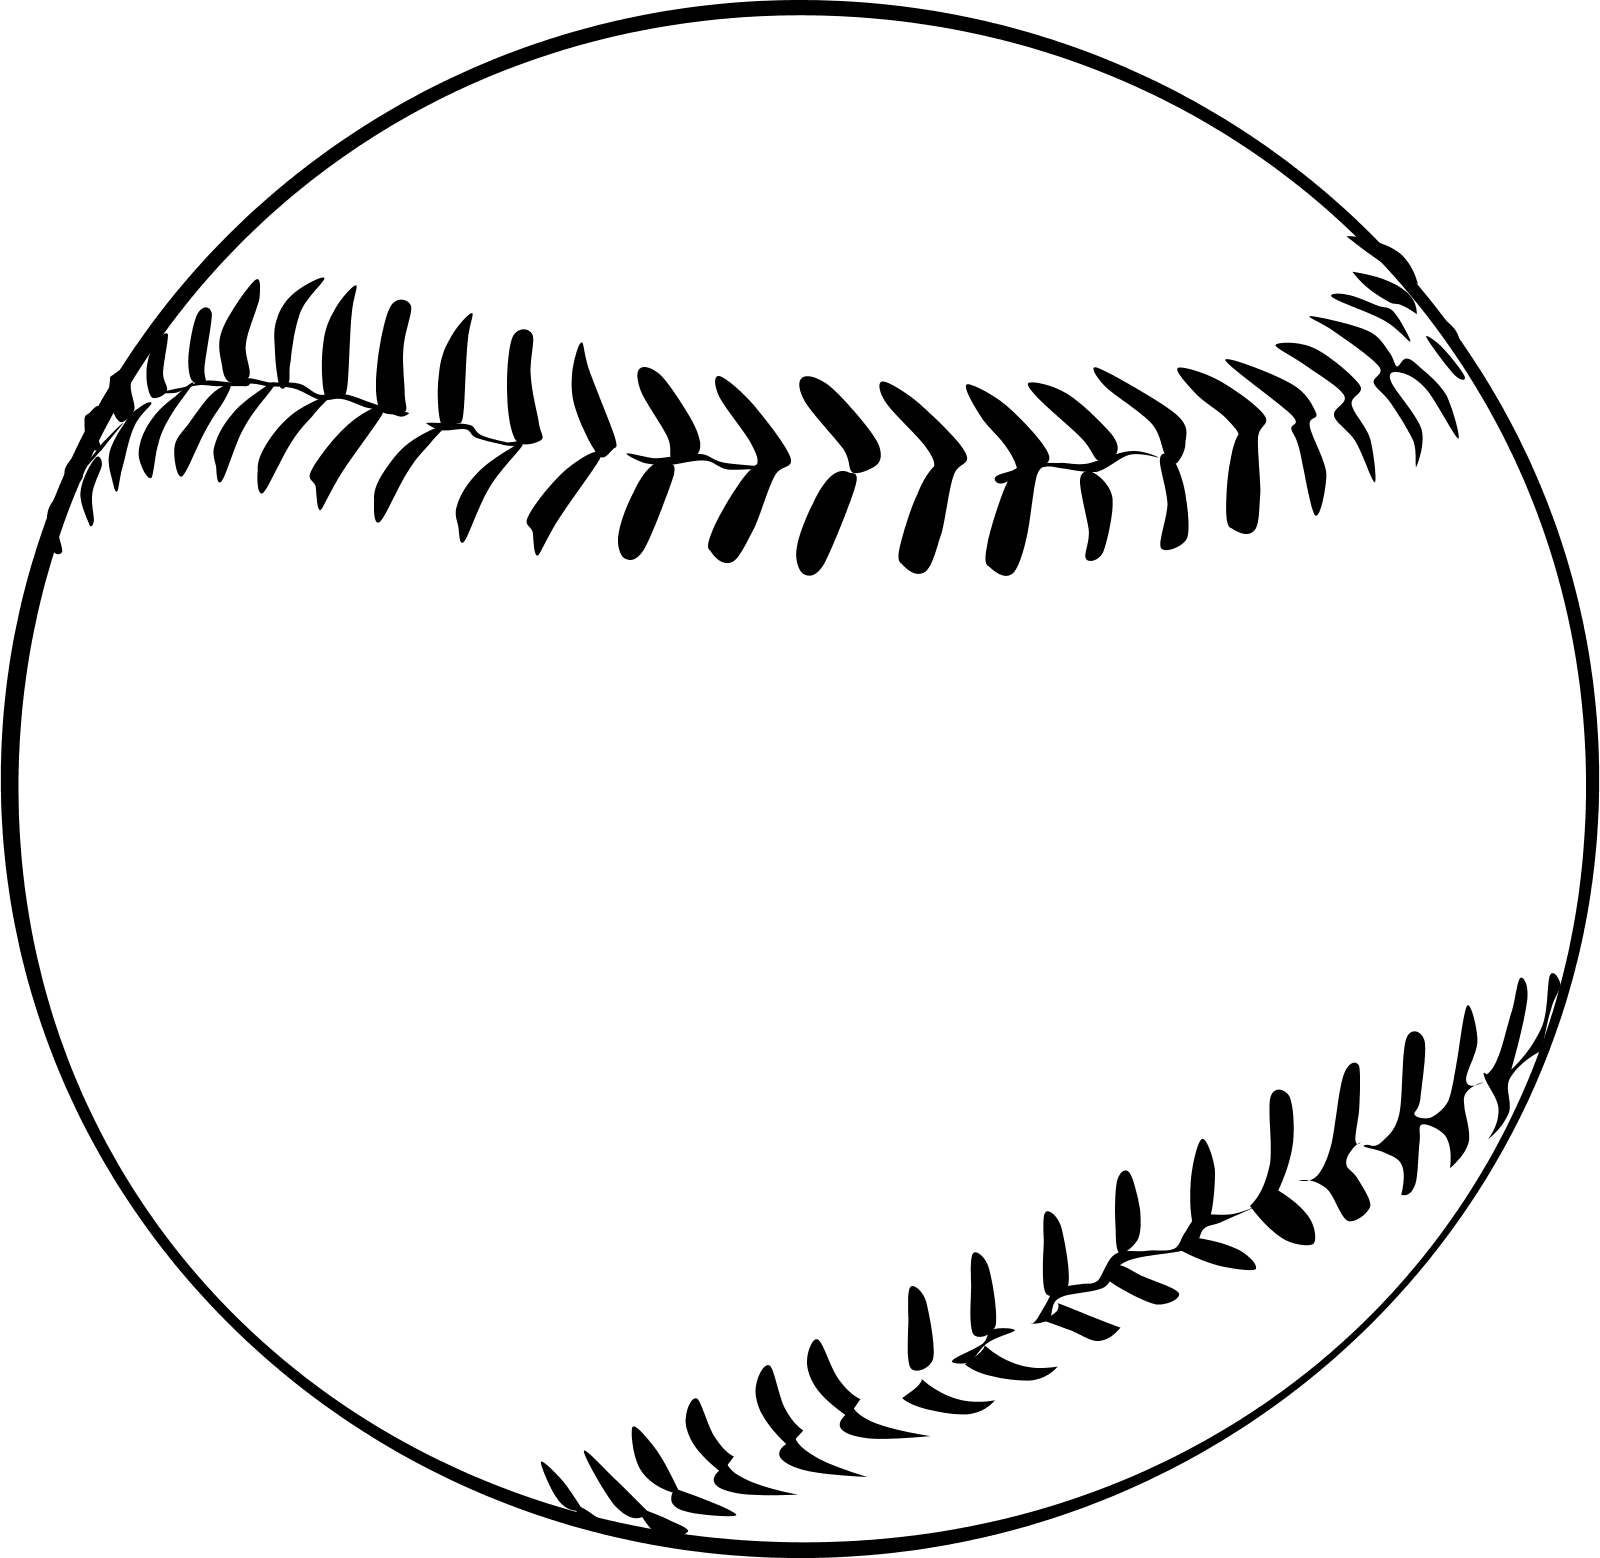 Drawn baseball Black Clipart And baseball%20clipart%20black%20and%20white Field